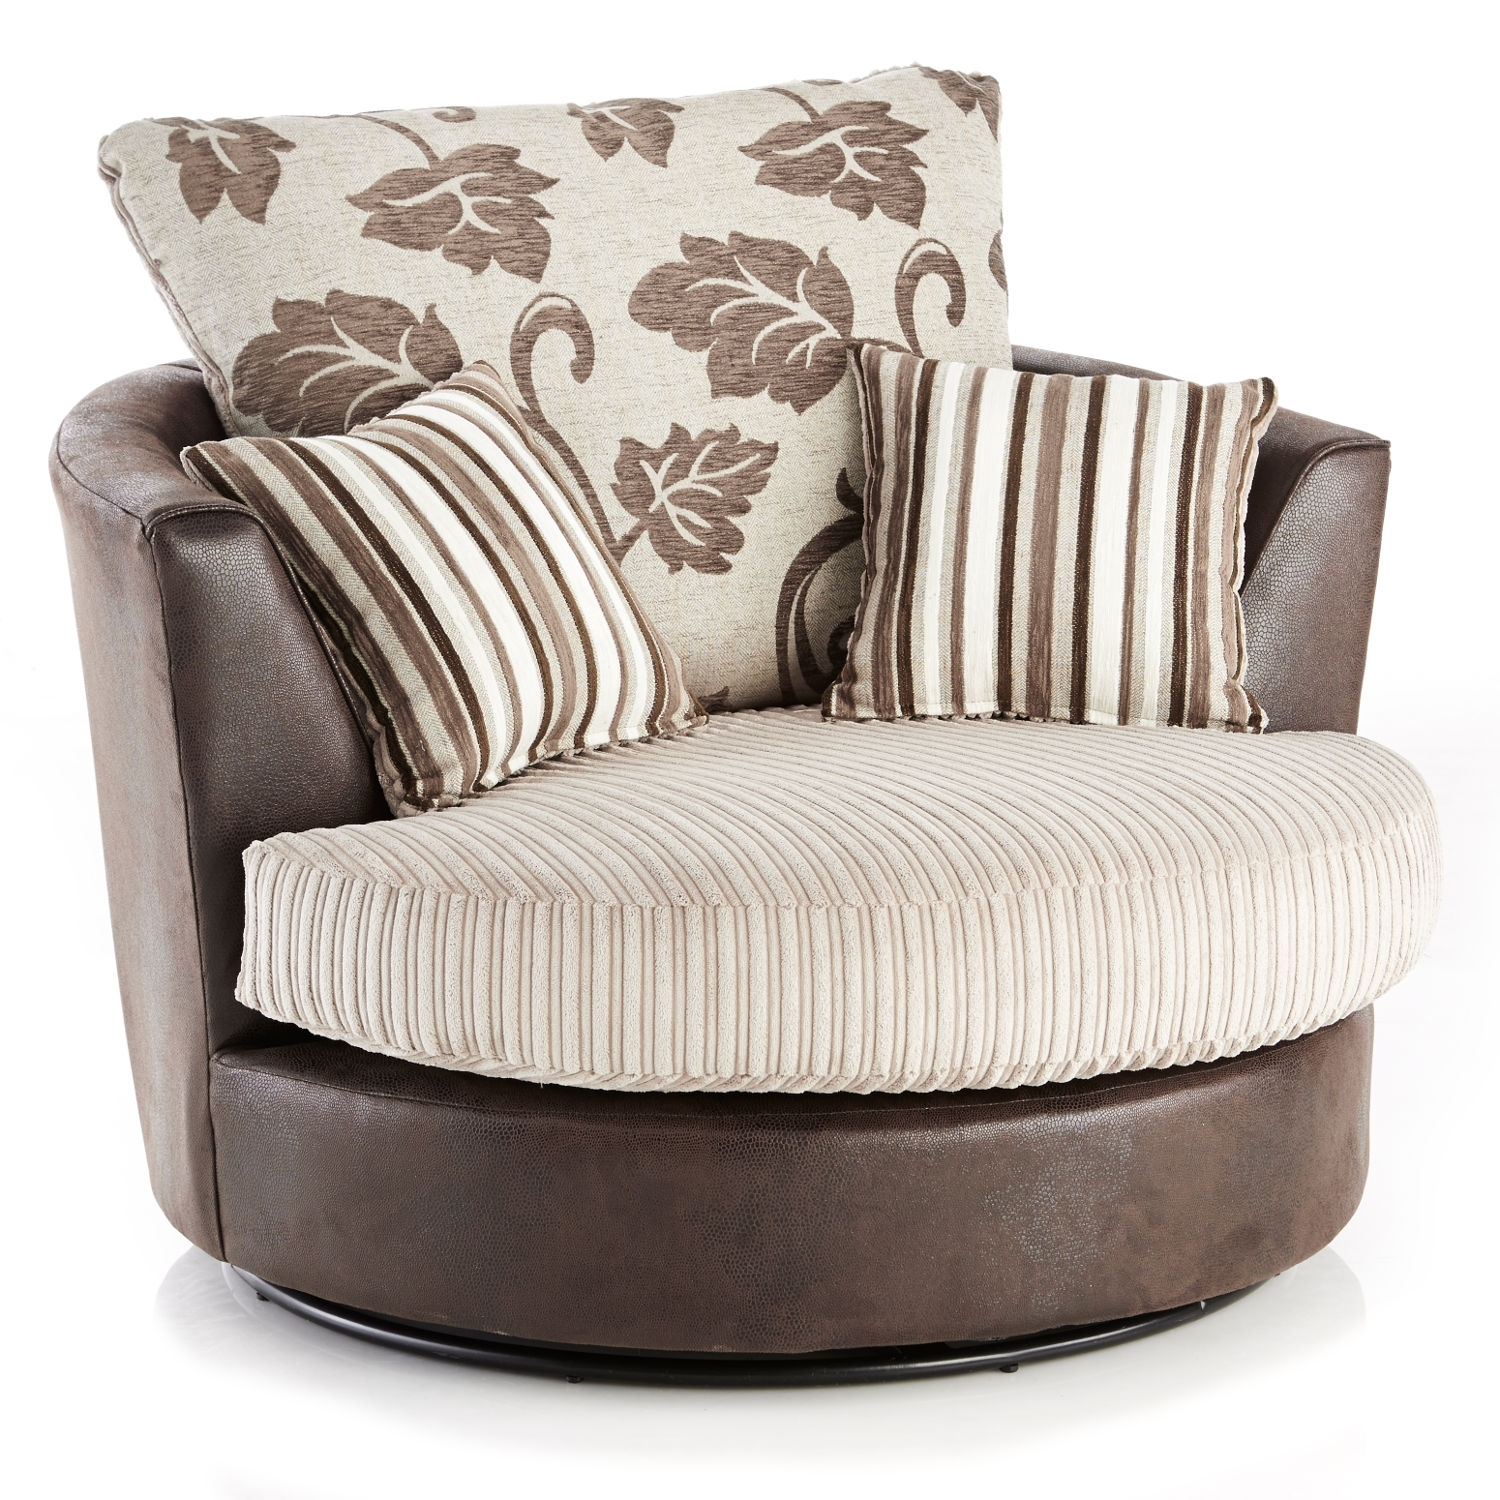 Jumbo Cord Corner Sofa Manchester: 10 Photos Sofas With Swivel Chair